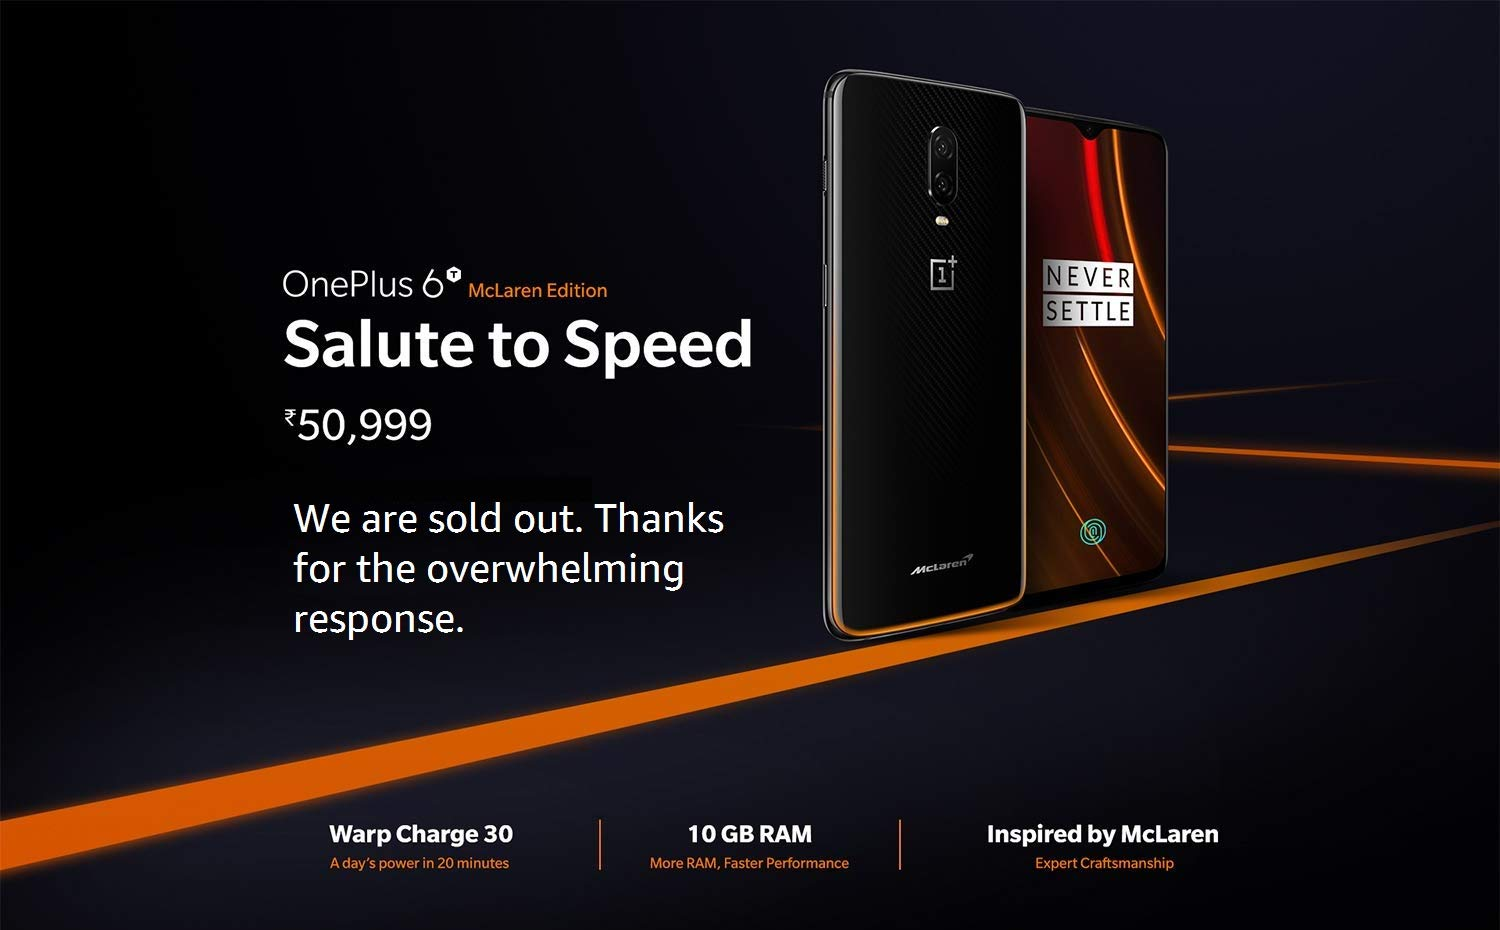 OnePlus 6T McLaren Edition Will go on Sale in Amazon